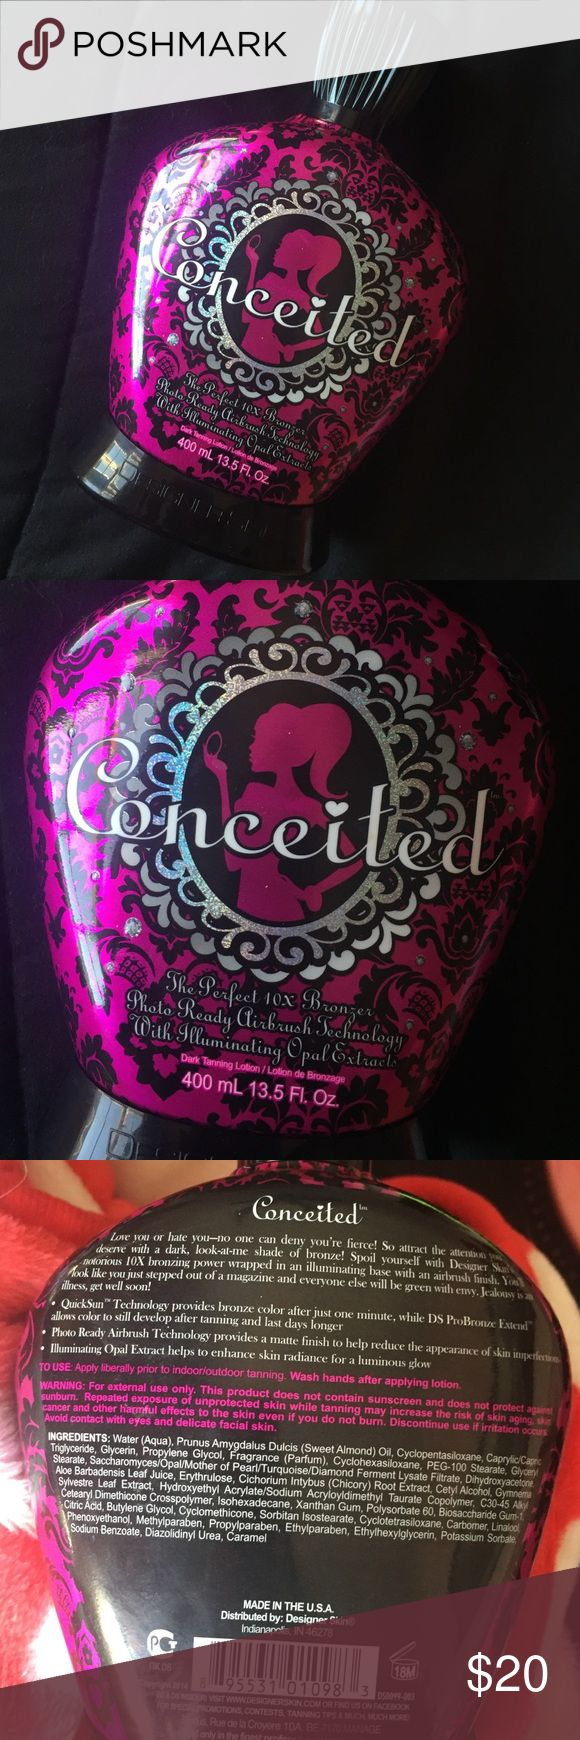 Conceited by designer skin tanning lotion 10x bronzer. Silicone based, so super lightweight and spreadable! Smells super yummy like green apples. Gives you a matte finish to blur away imperfections. designer skin Other